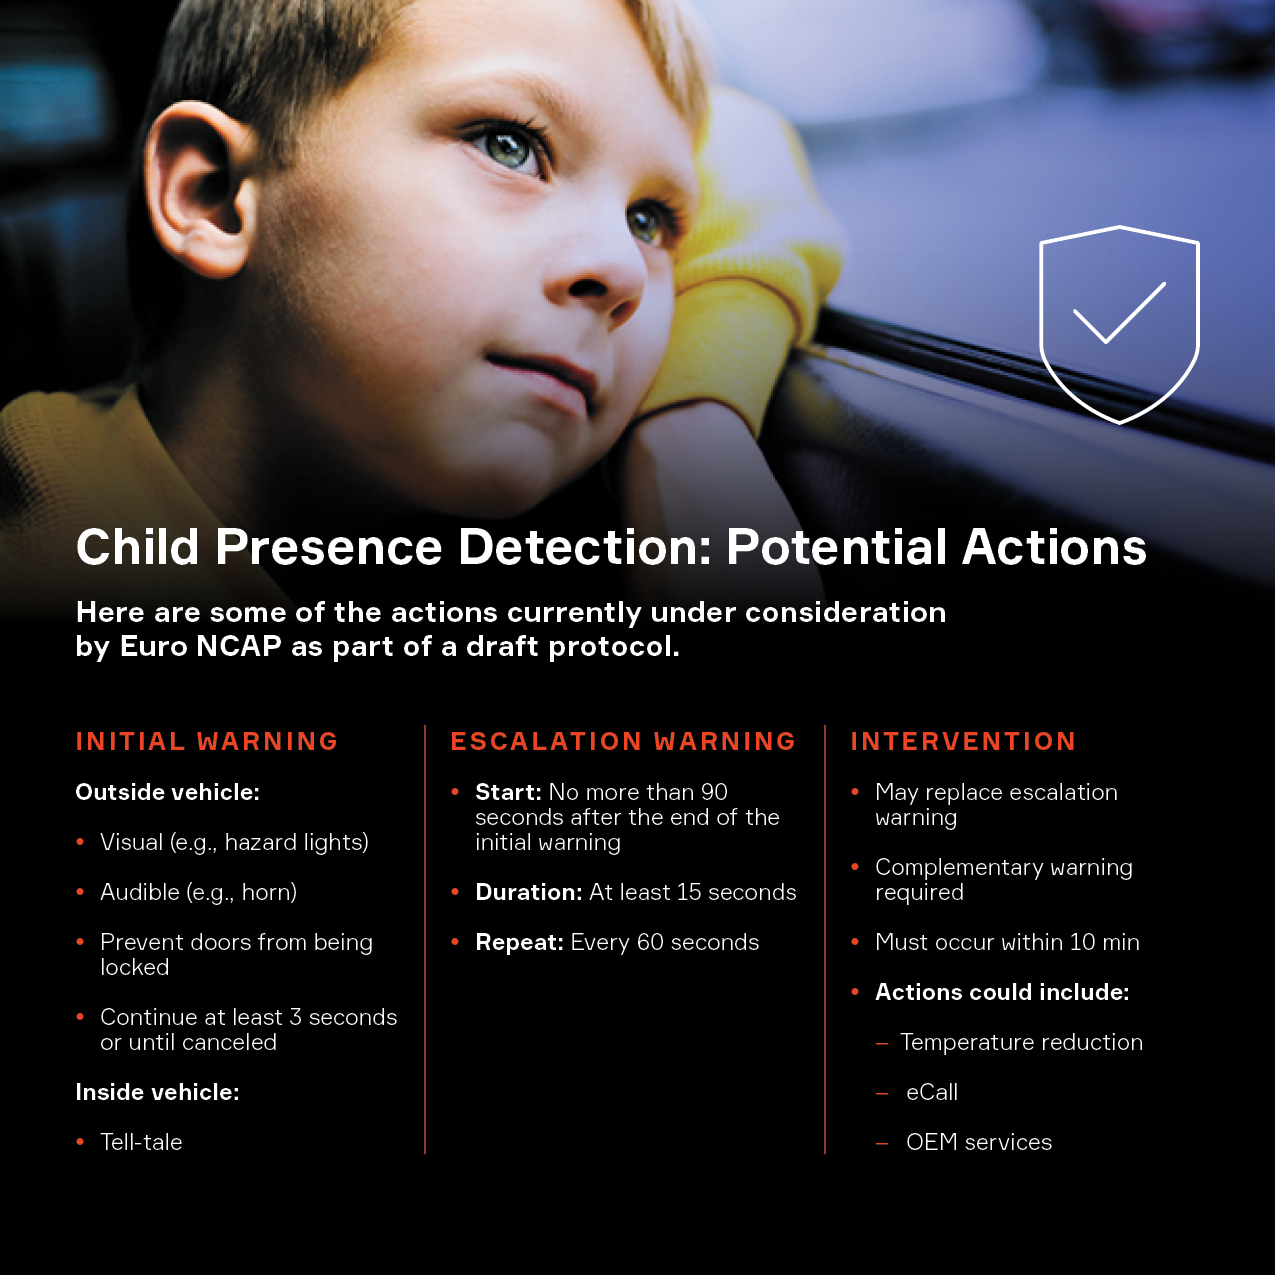 Child Presence Detection: Potential Actions